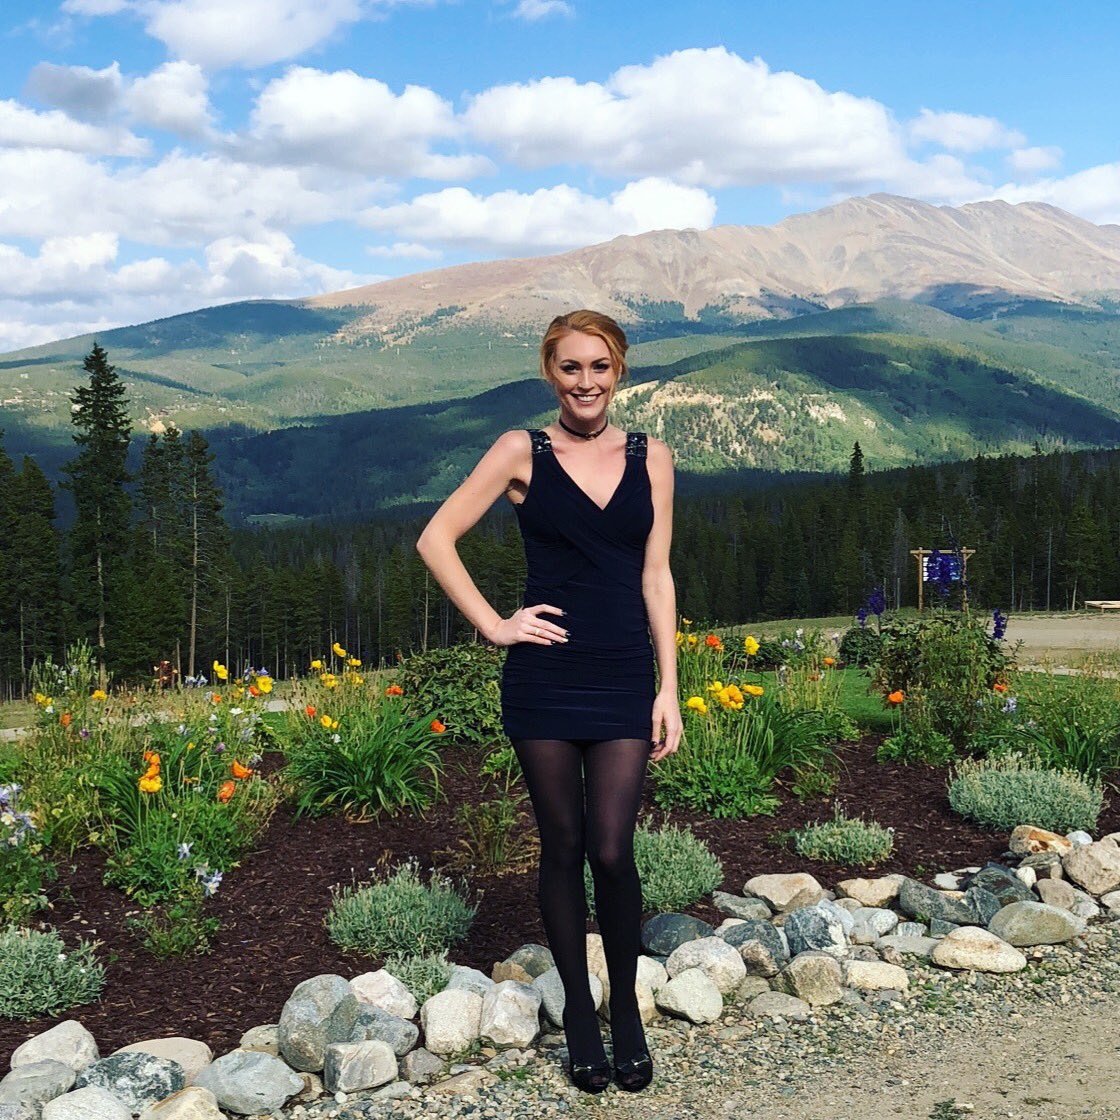 Colorado is so beautiful!!! Too cold for me tho!! Had to go 90s style the wedding today with the tights